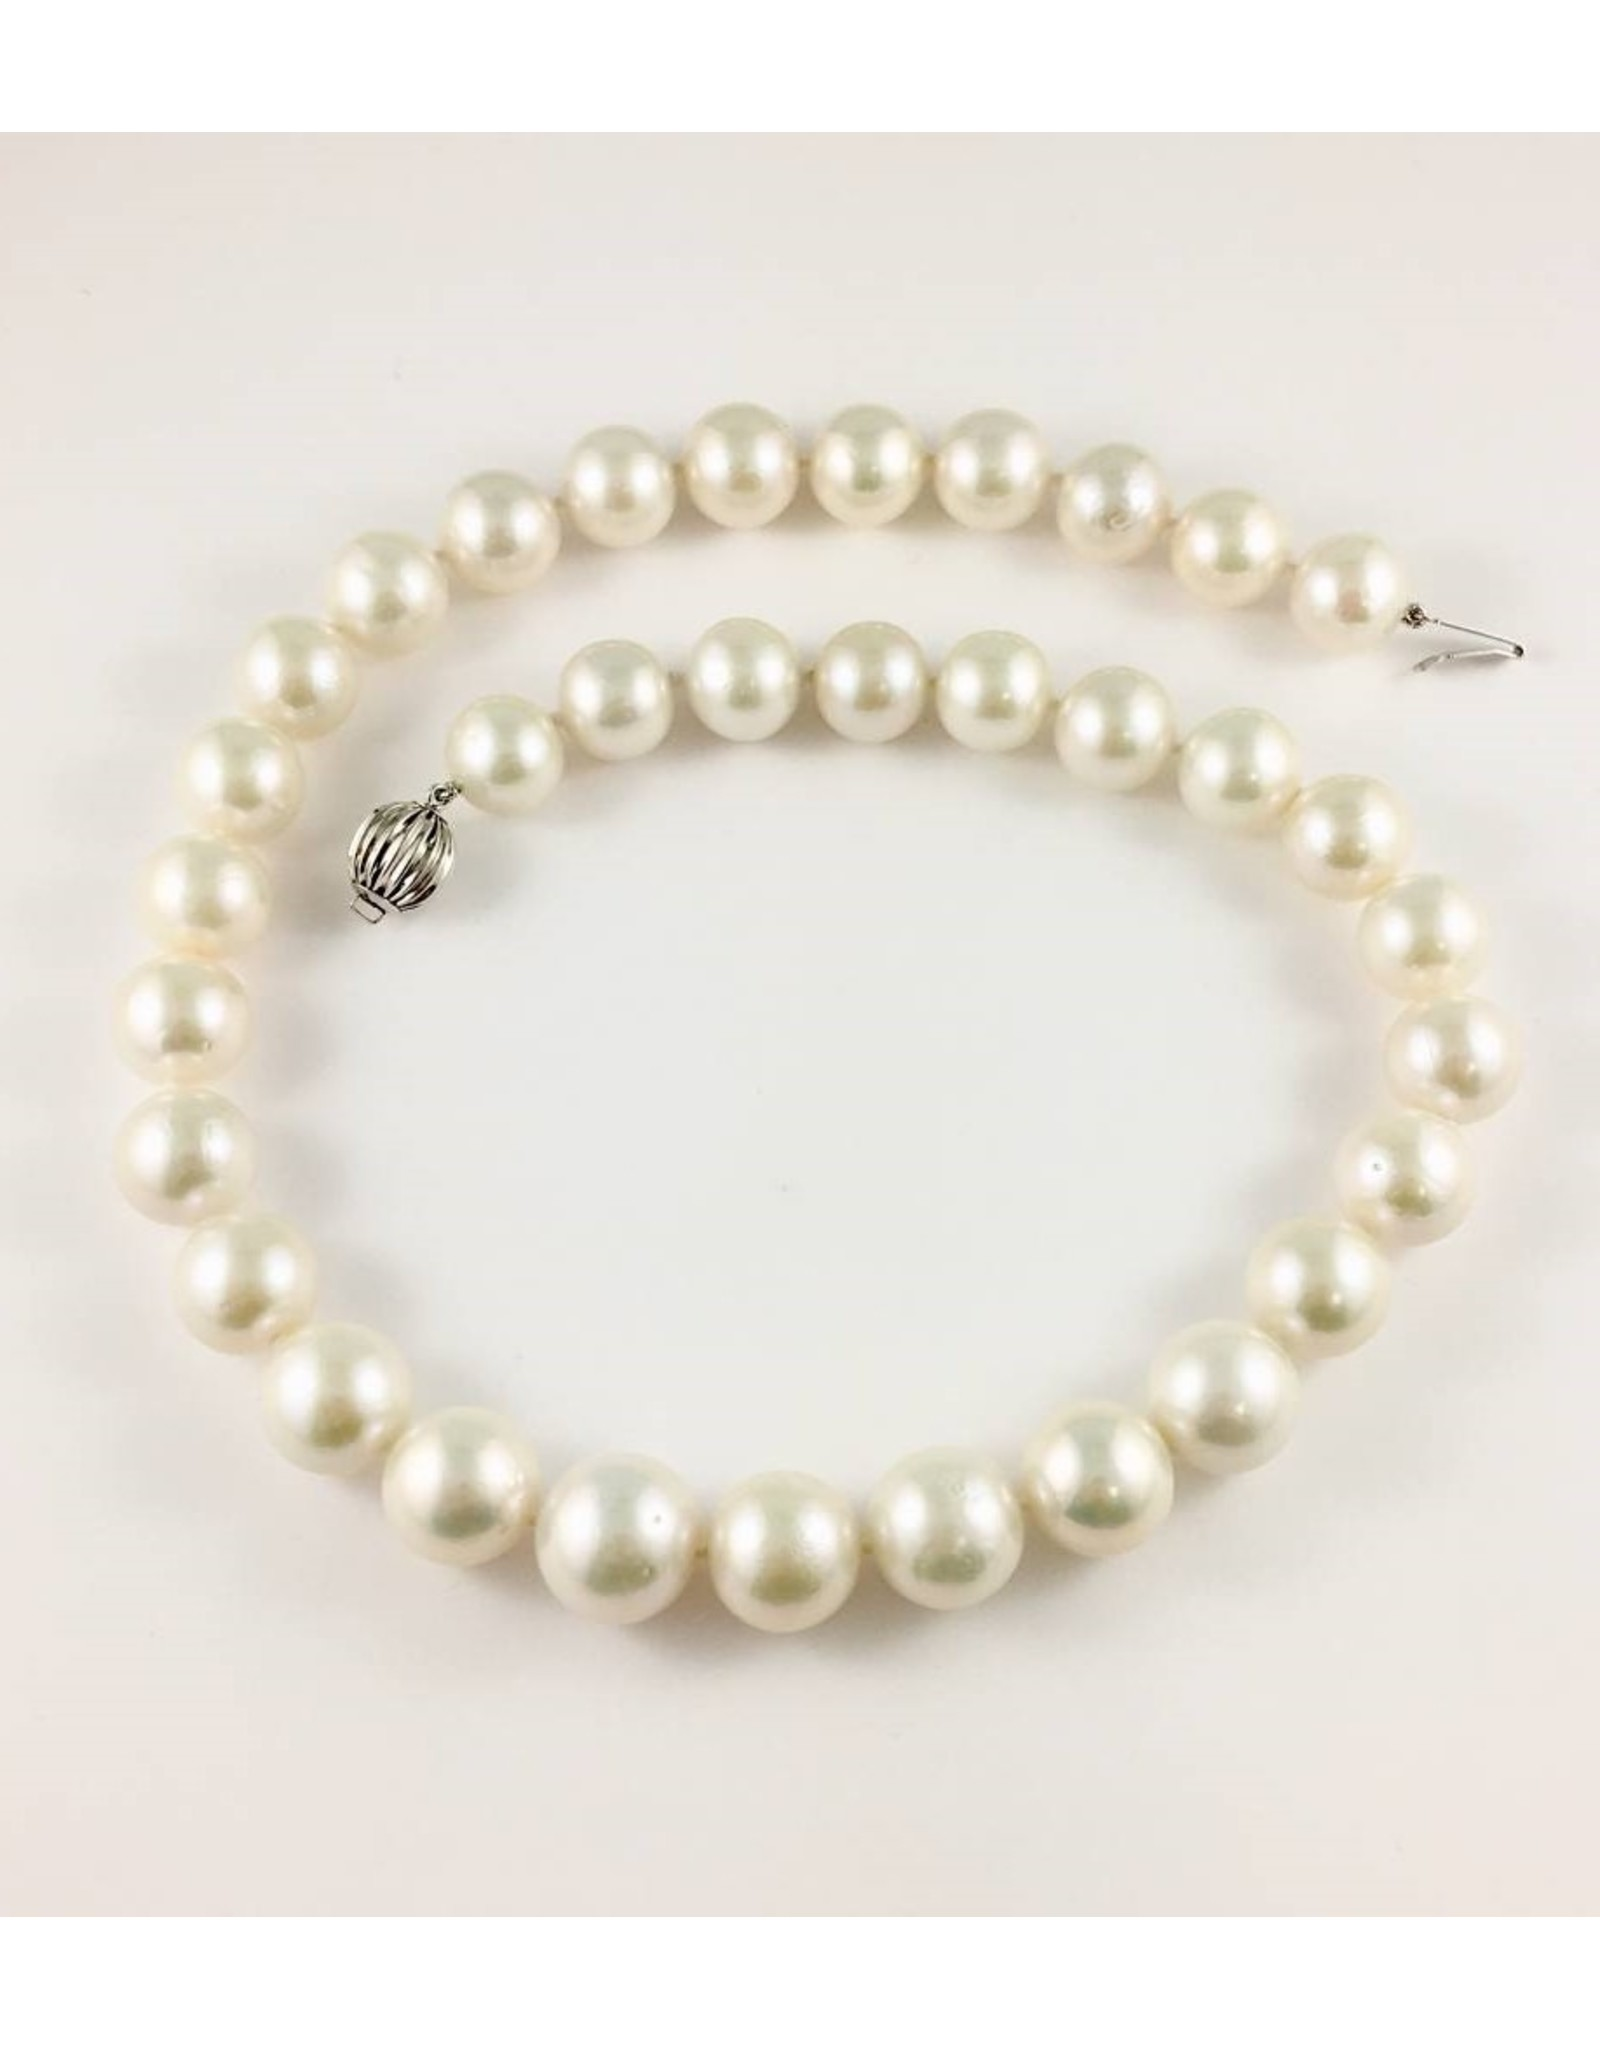 Freshwater (12-15mm) Pearl Necklace 14KW